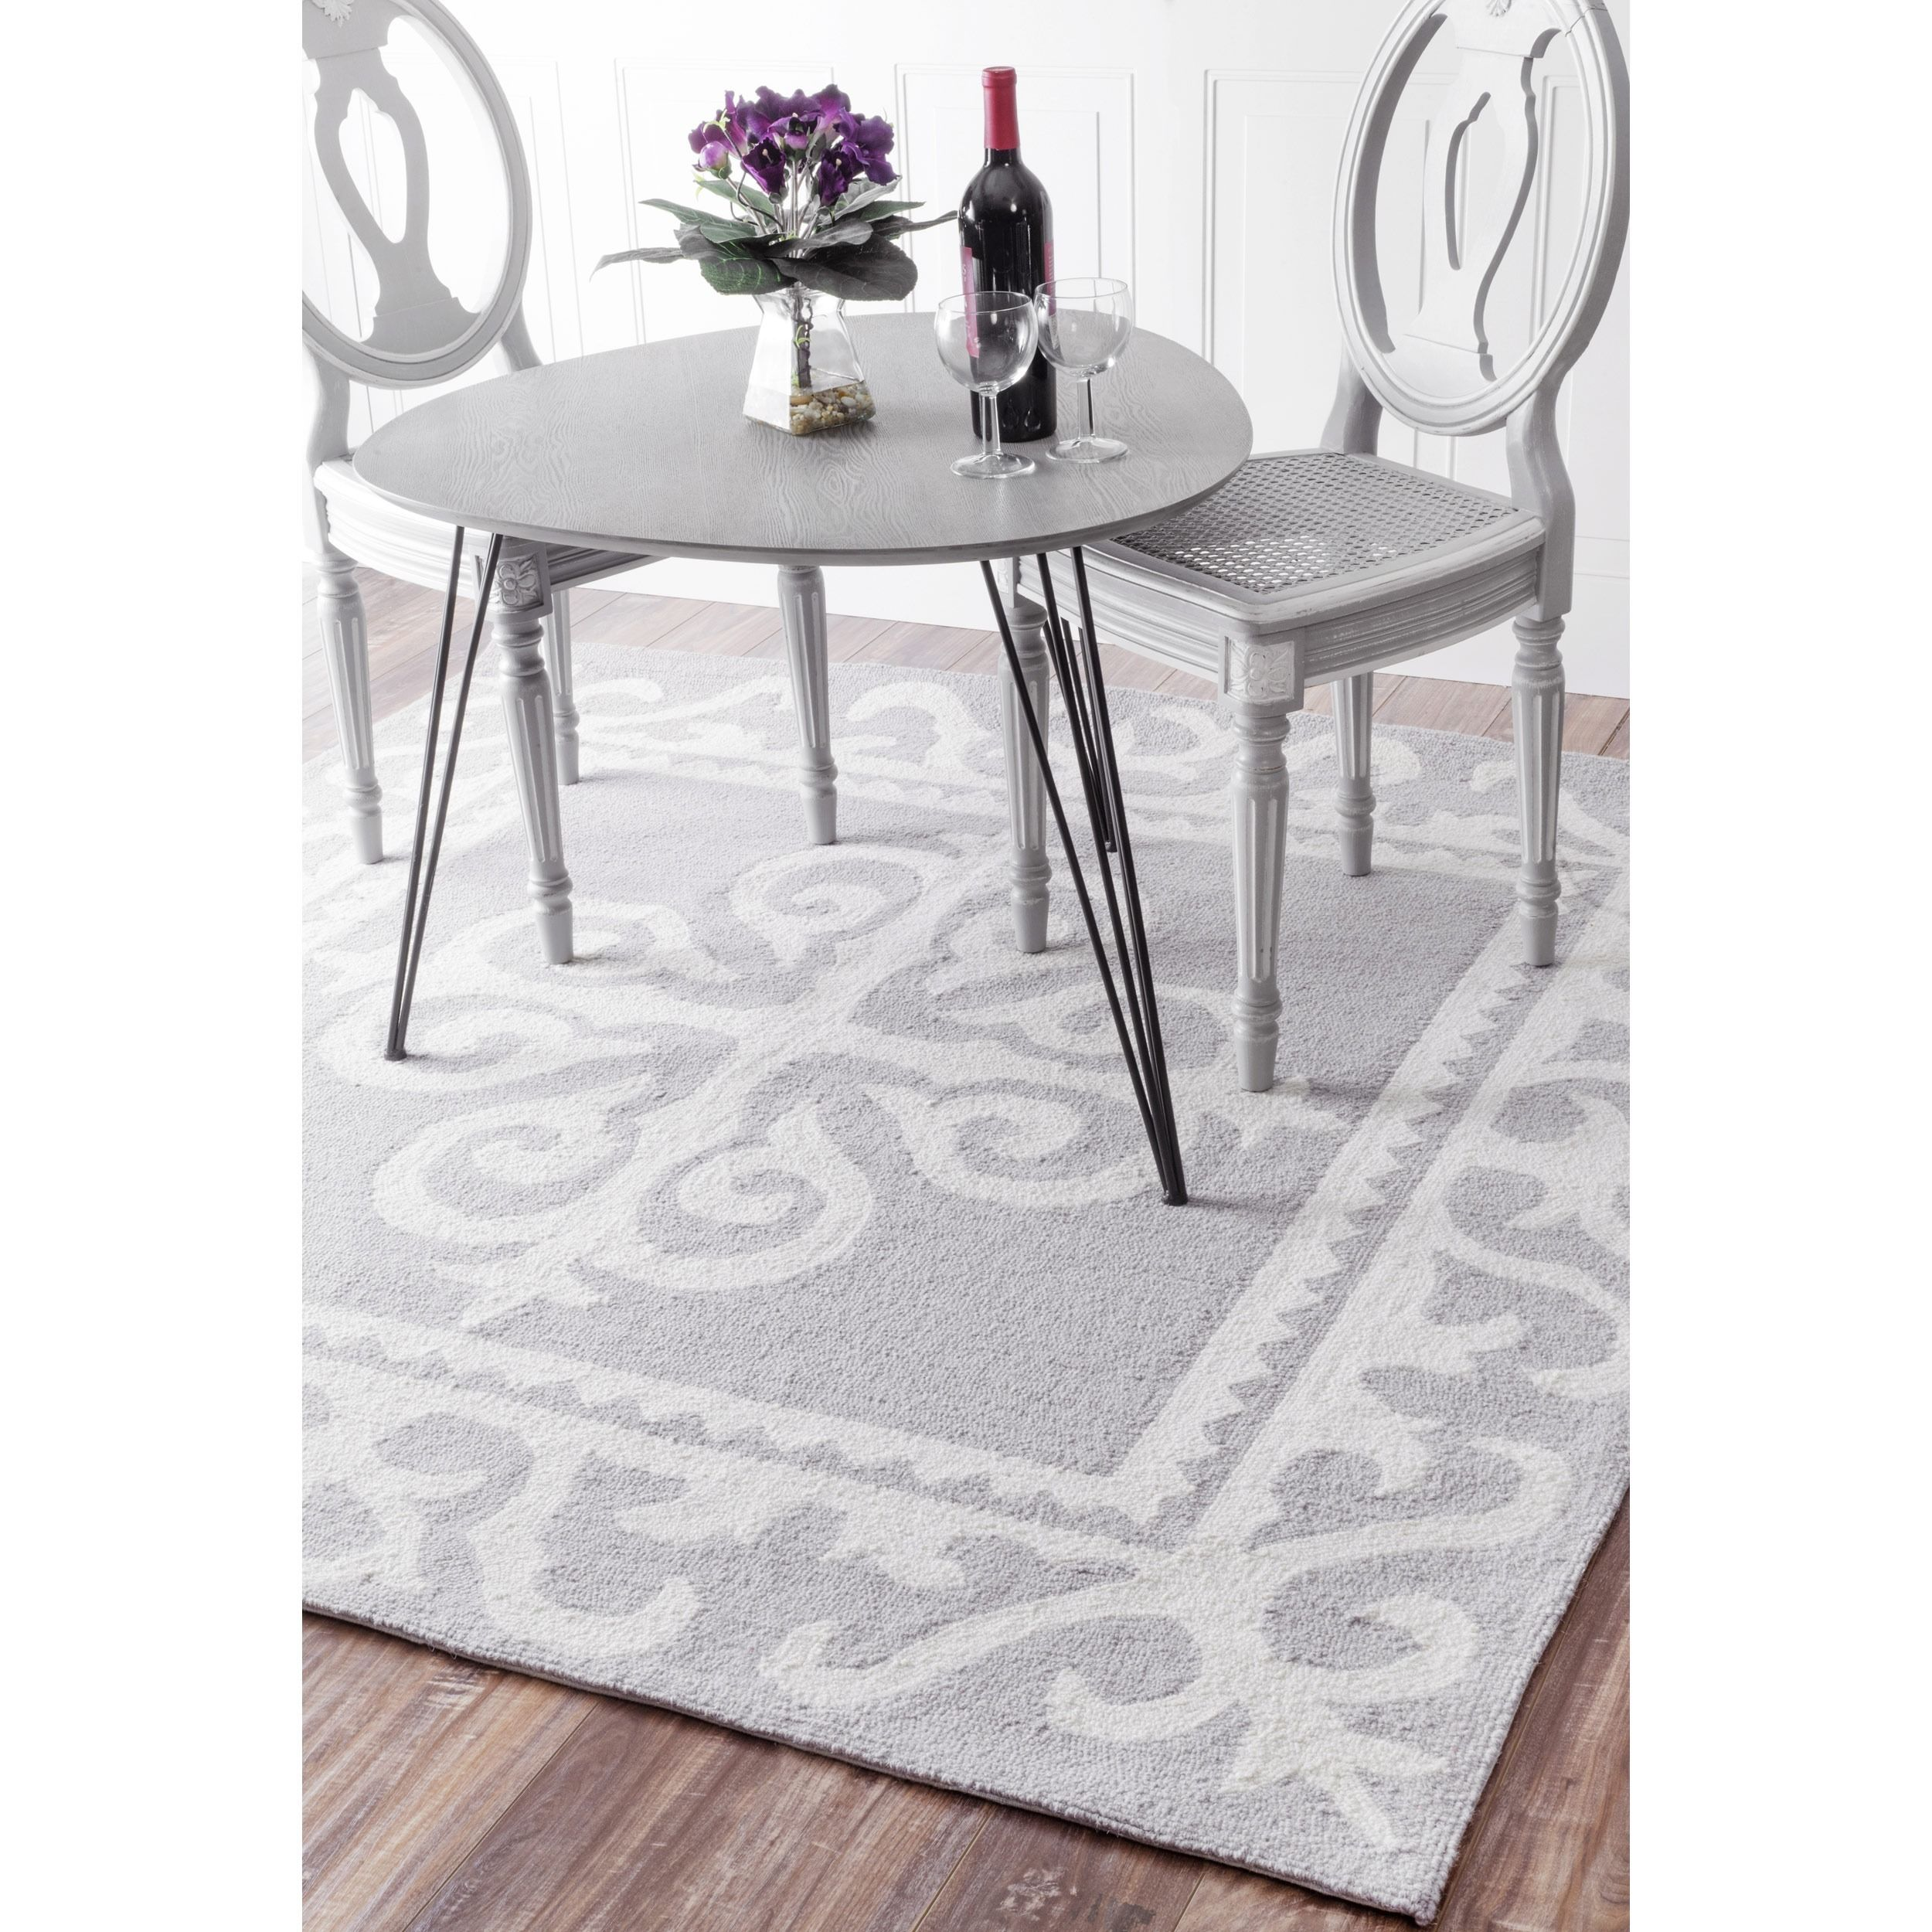 Online Shopping Bedding Furniture Electronics Jewelry Clothing More With Images Contemporary Rugs Rugs Grey Wool Rugs